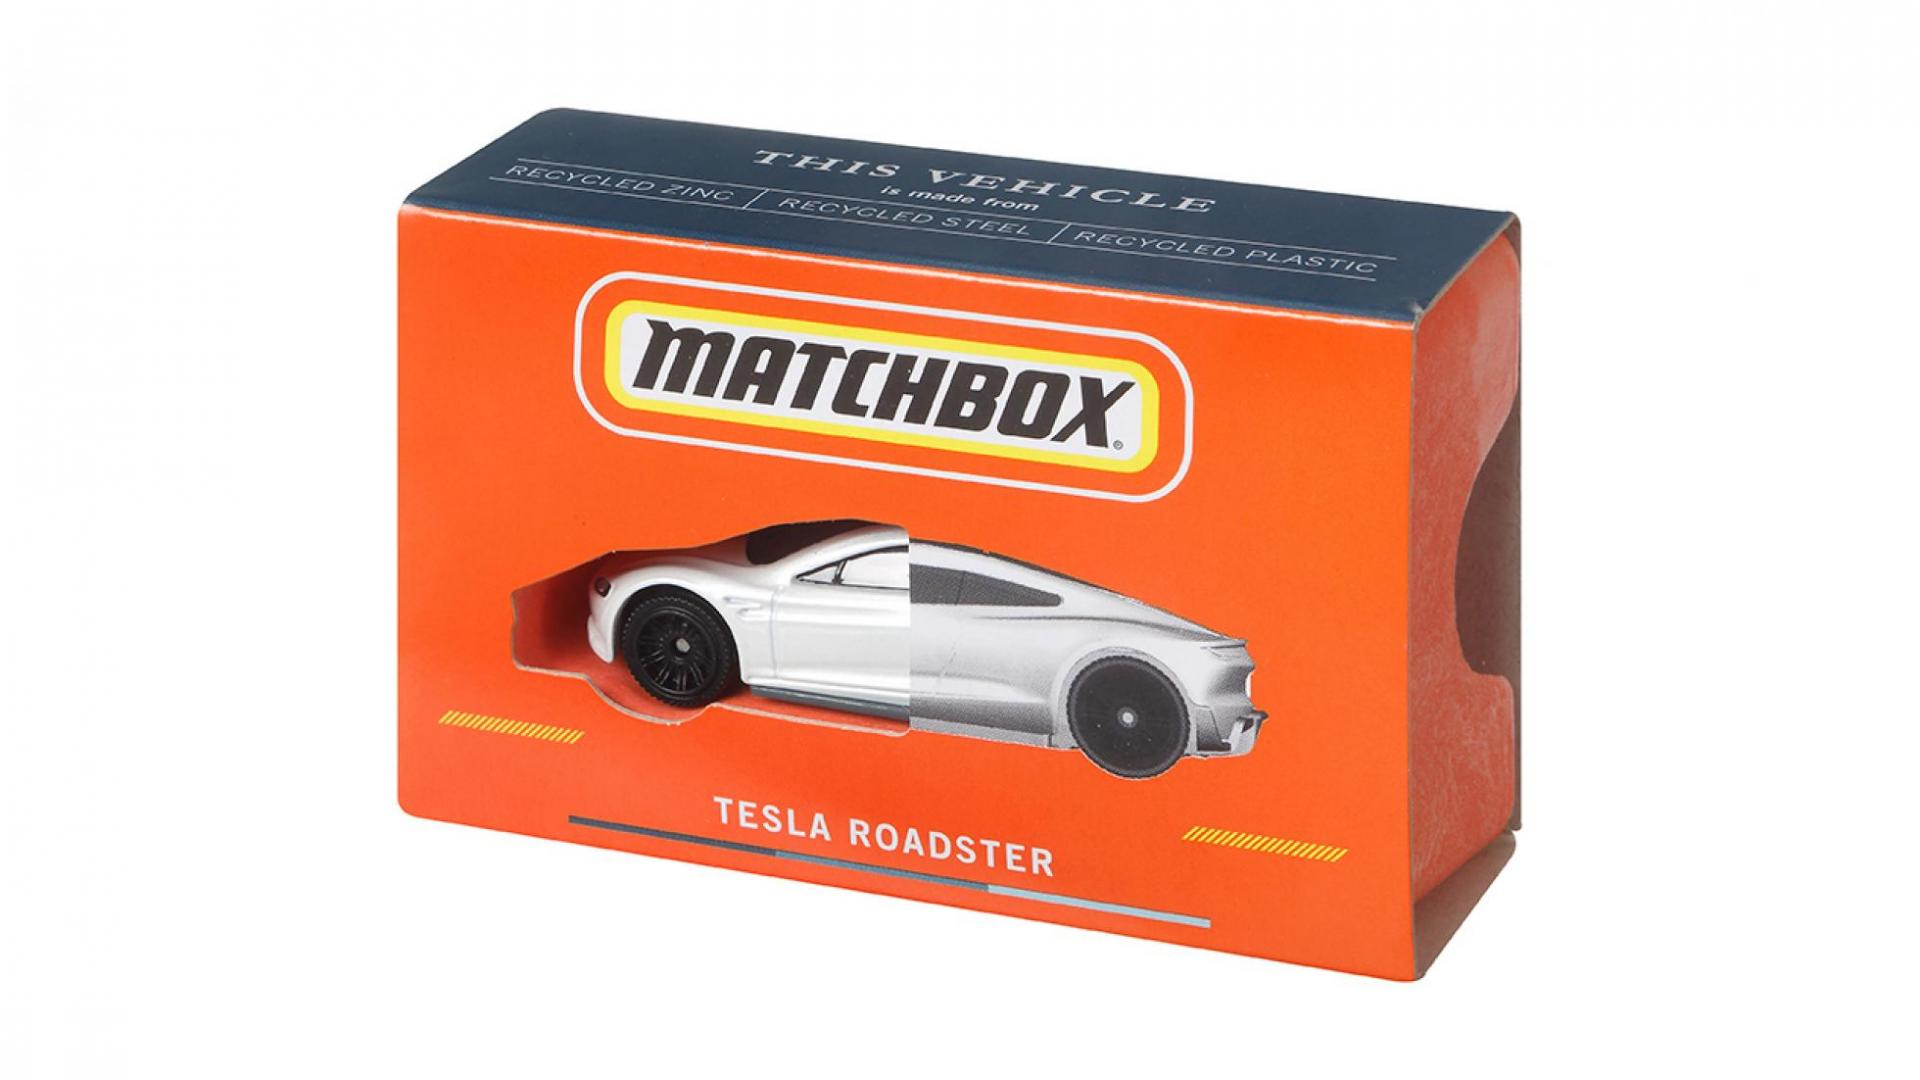 Matchbox Tesla Roadster is CO2-neutraal geproduceerd